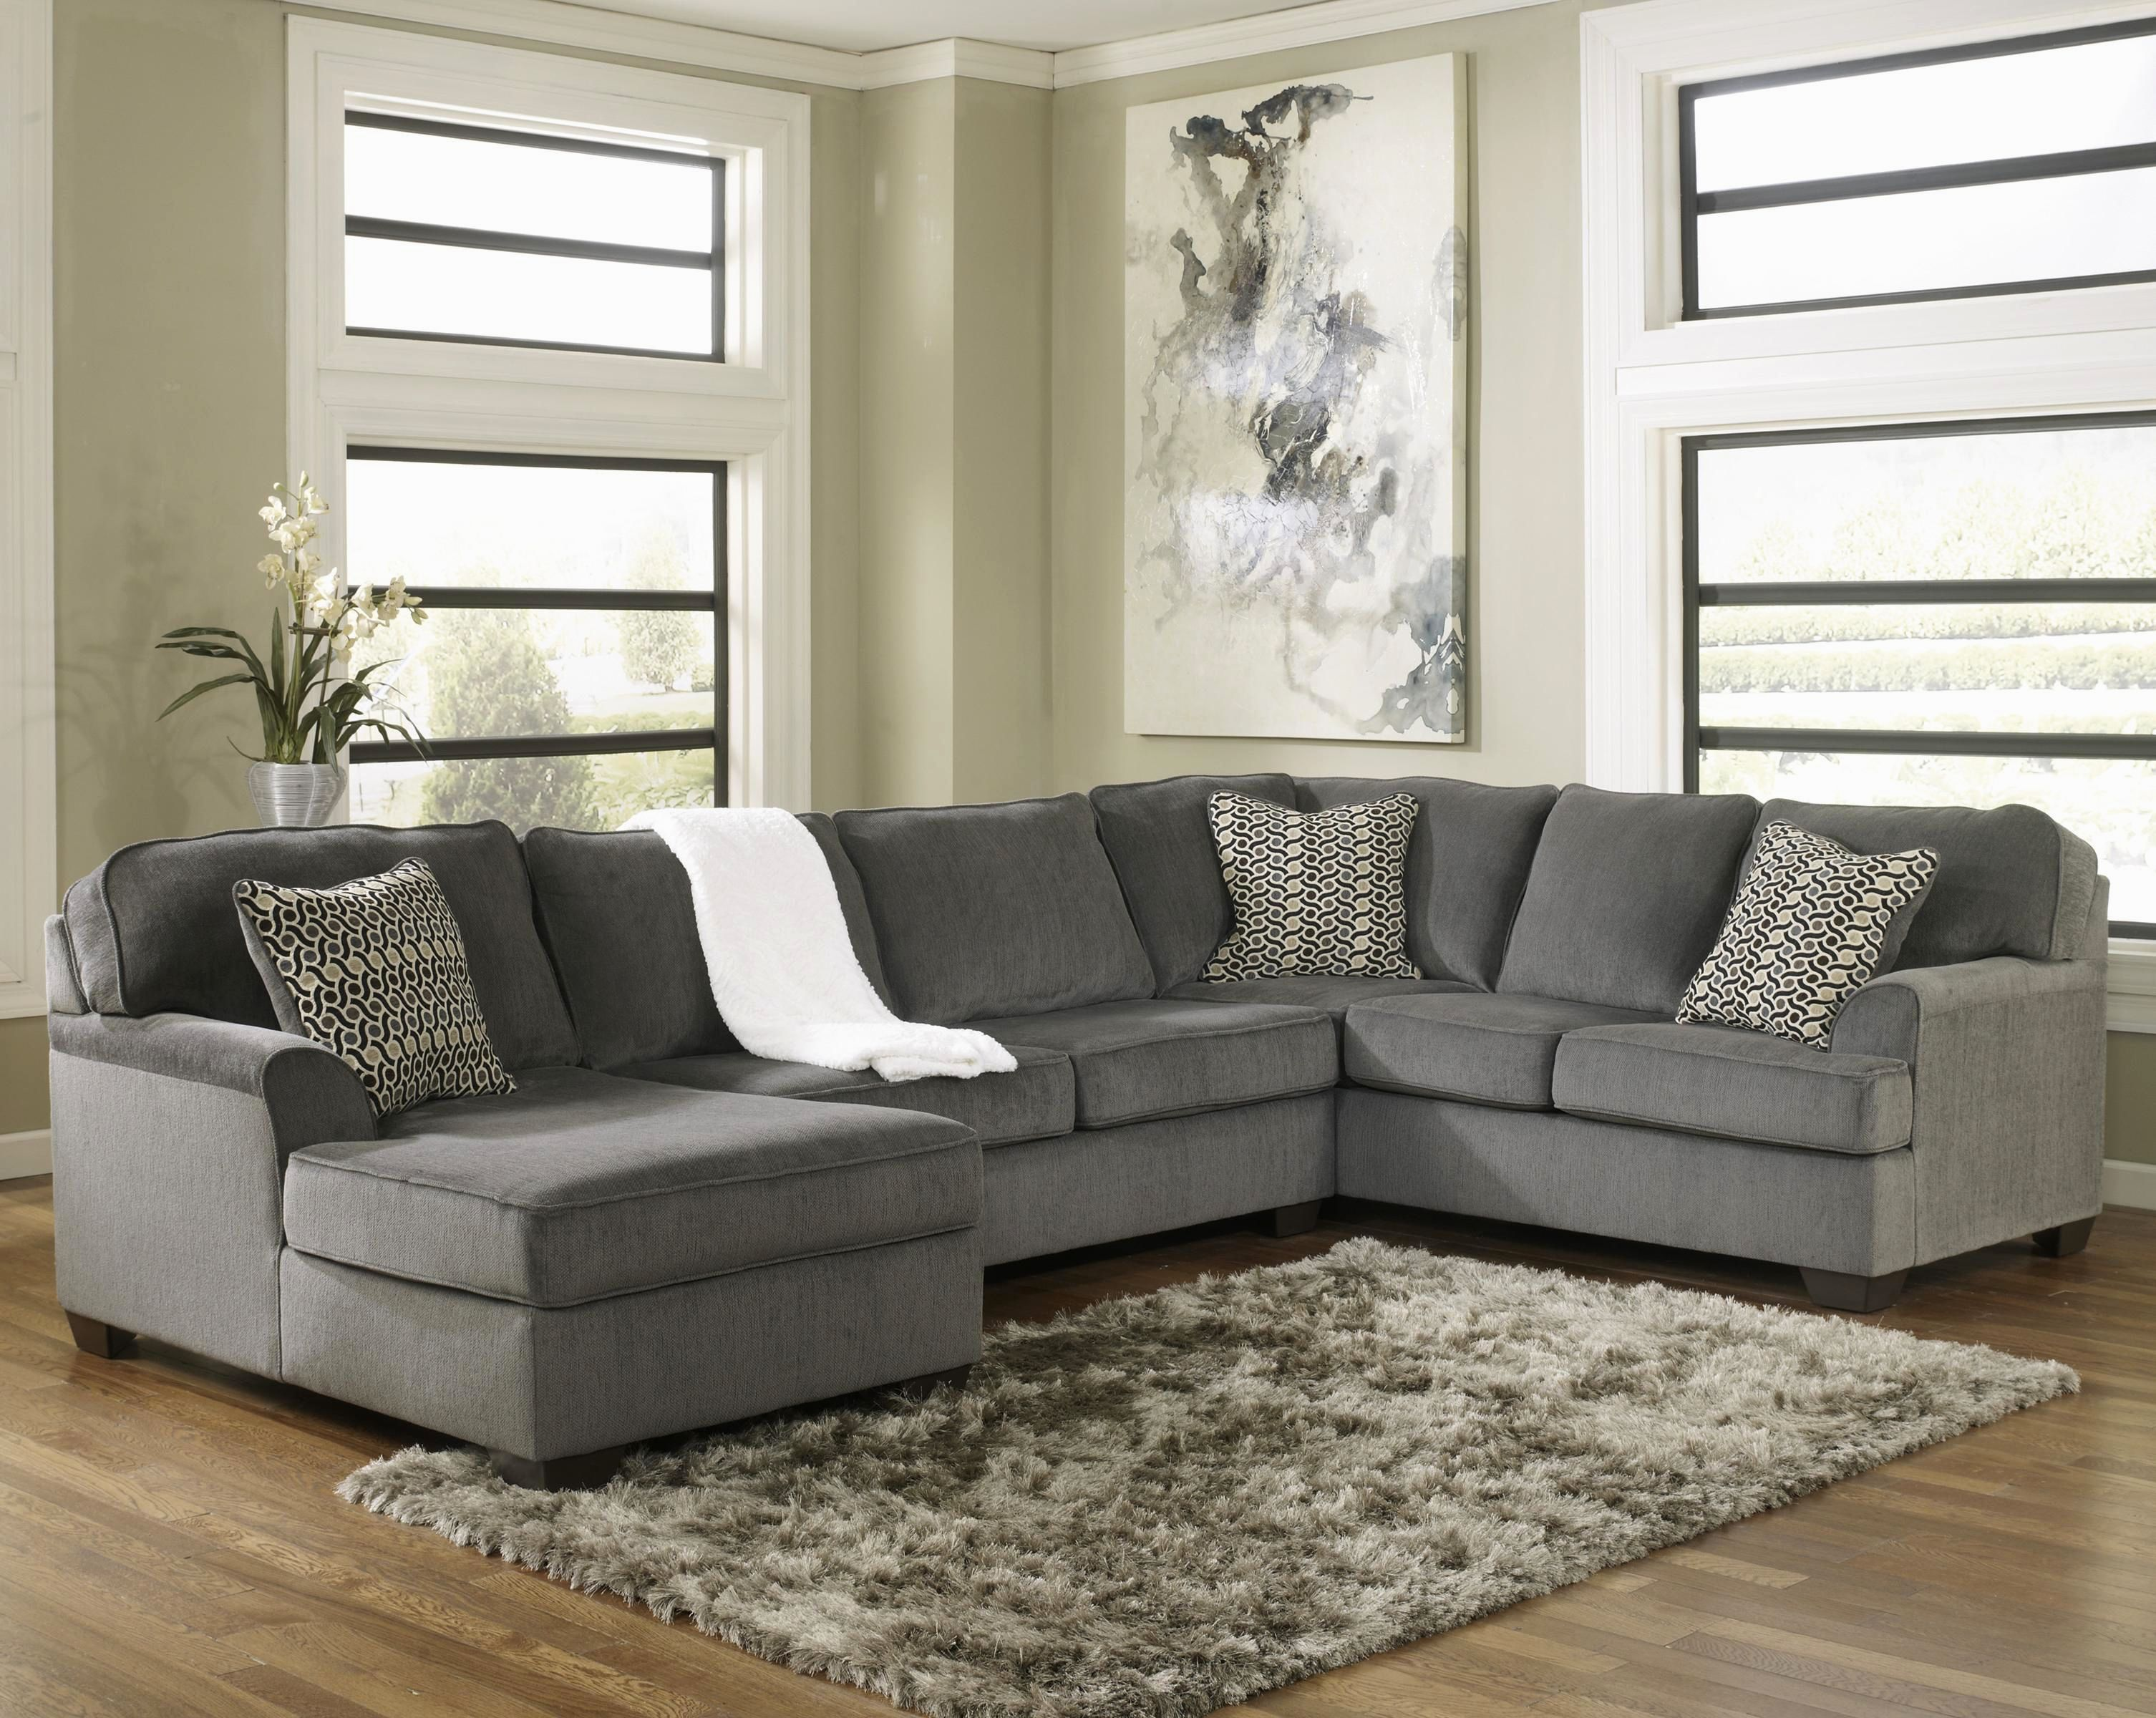 lovely leather sofa chaise wallpaper-Beautiful Leather sofa Chaise Inspiration